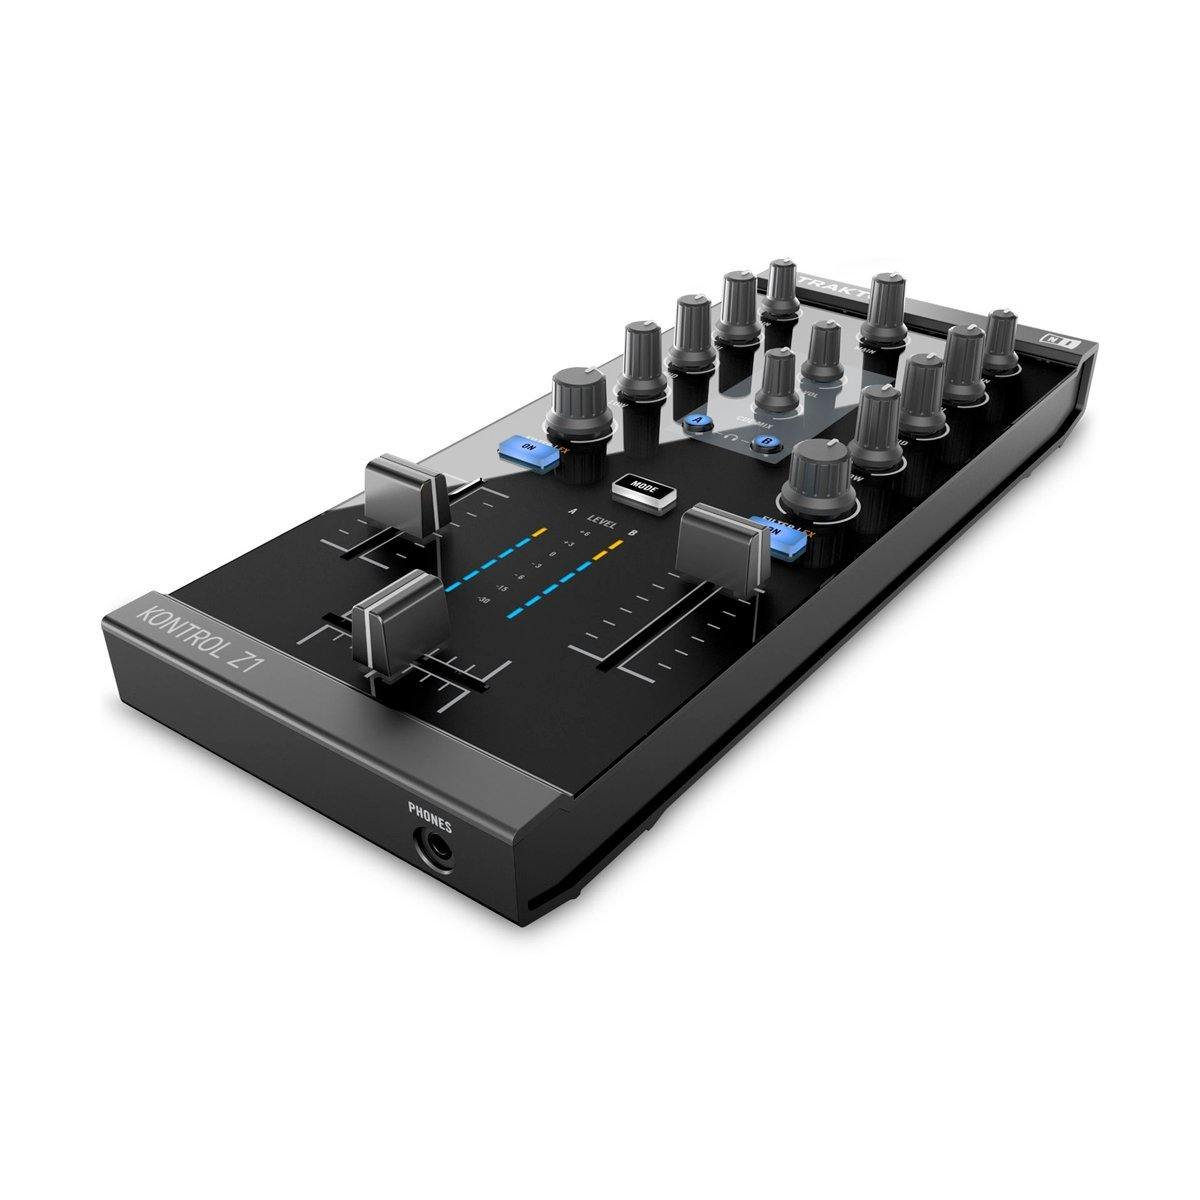 Native Instruments Traktor Kontrol Z1 DJ Mixer - ICONS Shop